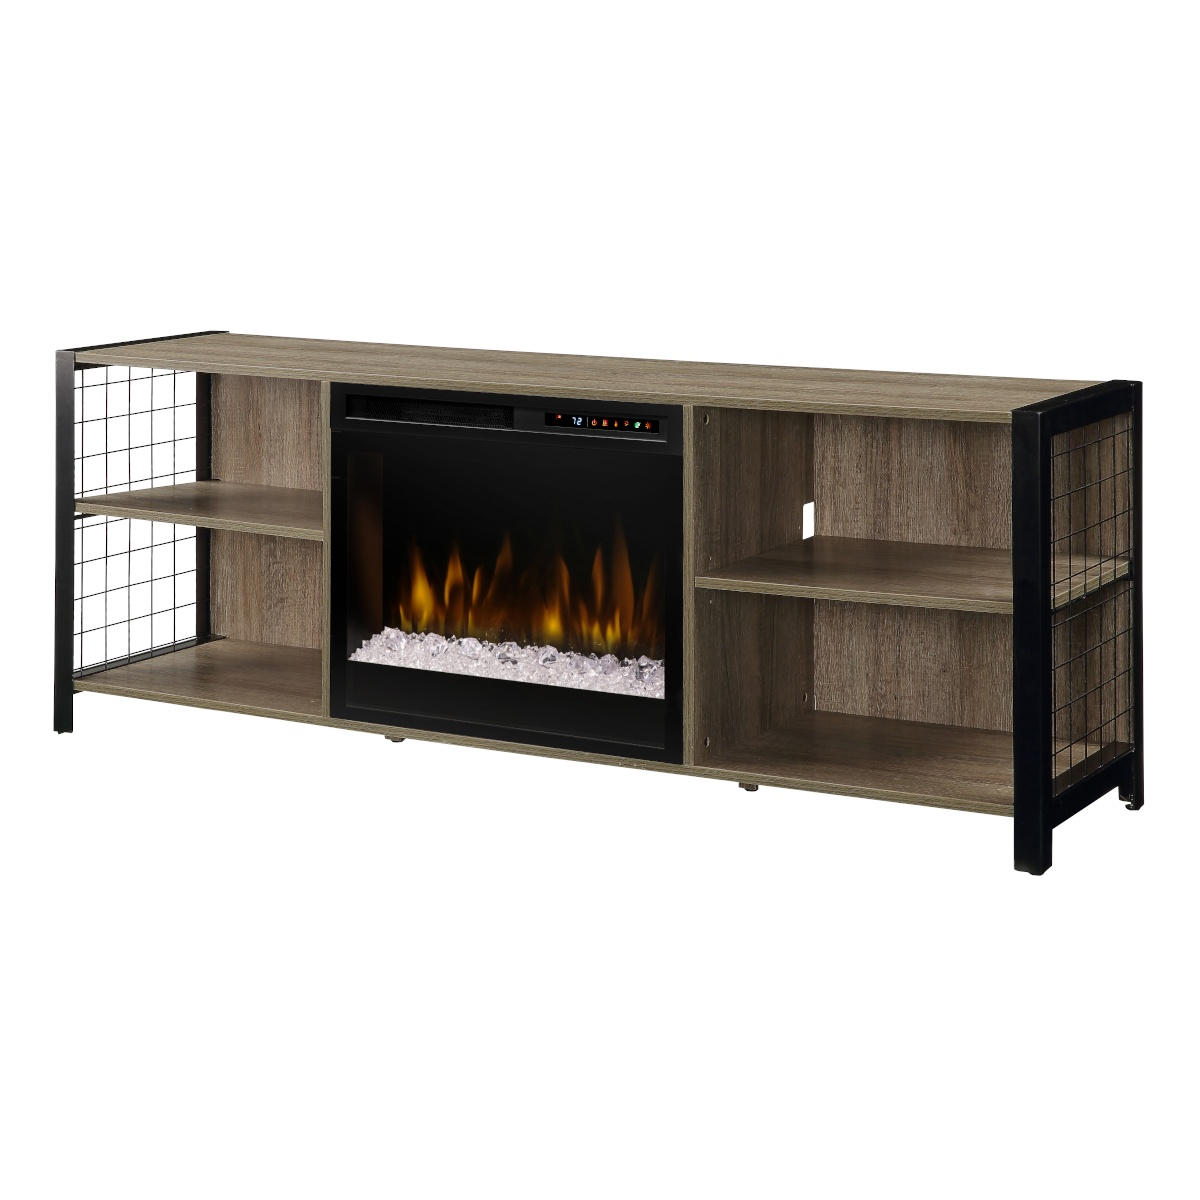 dimplex contemporary electric fireplace with glass embers inserted in a modern media console